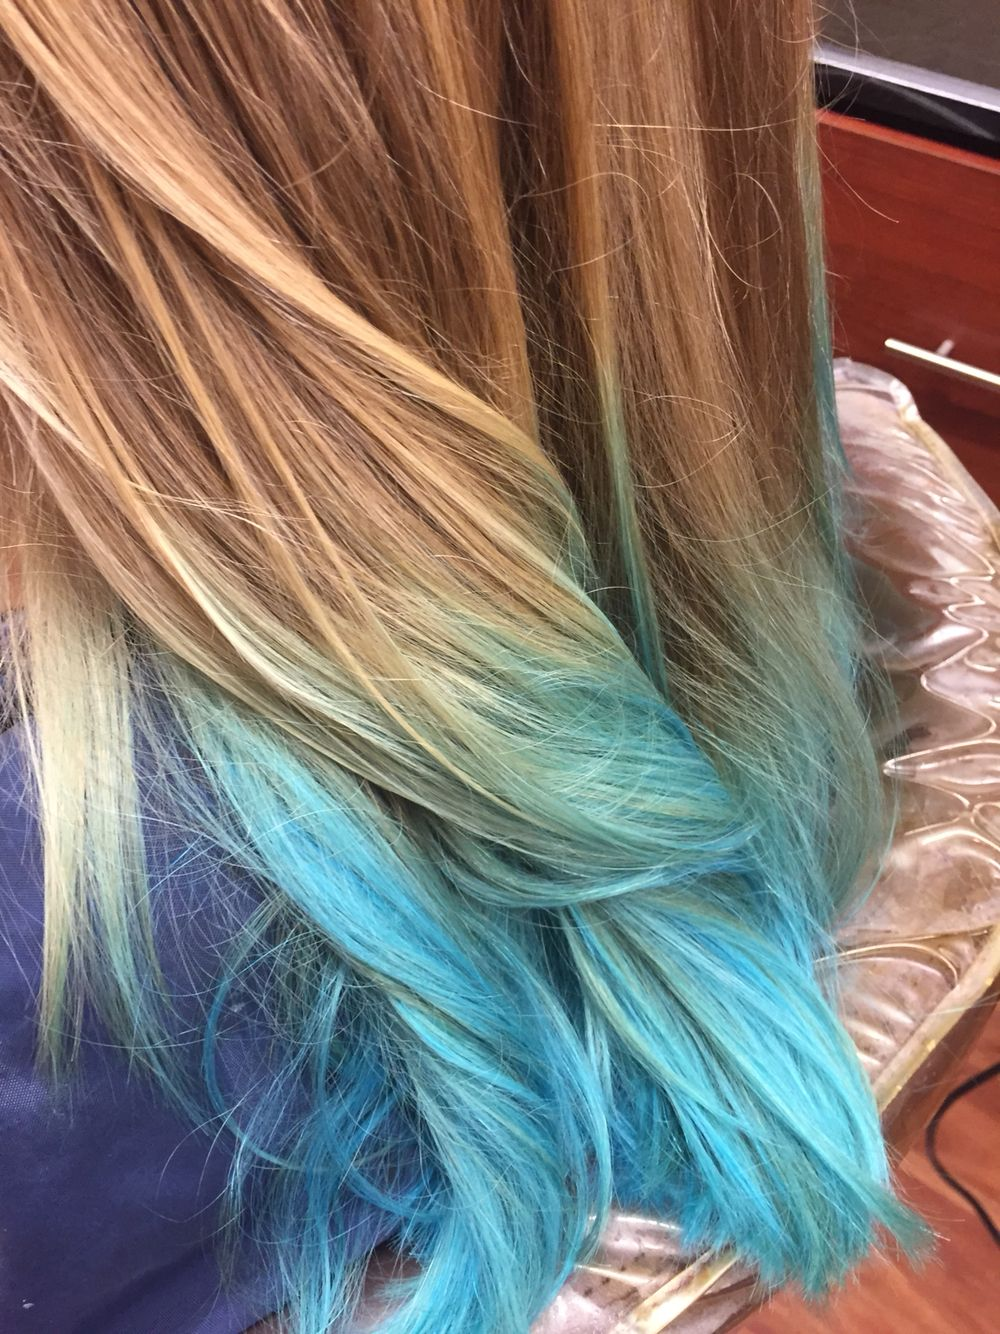 2019 year for girls- Blue blonde and green hair photo